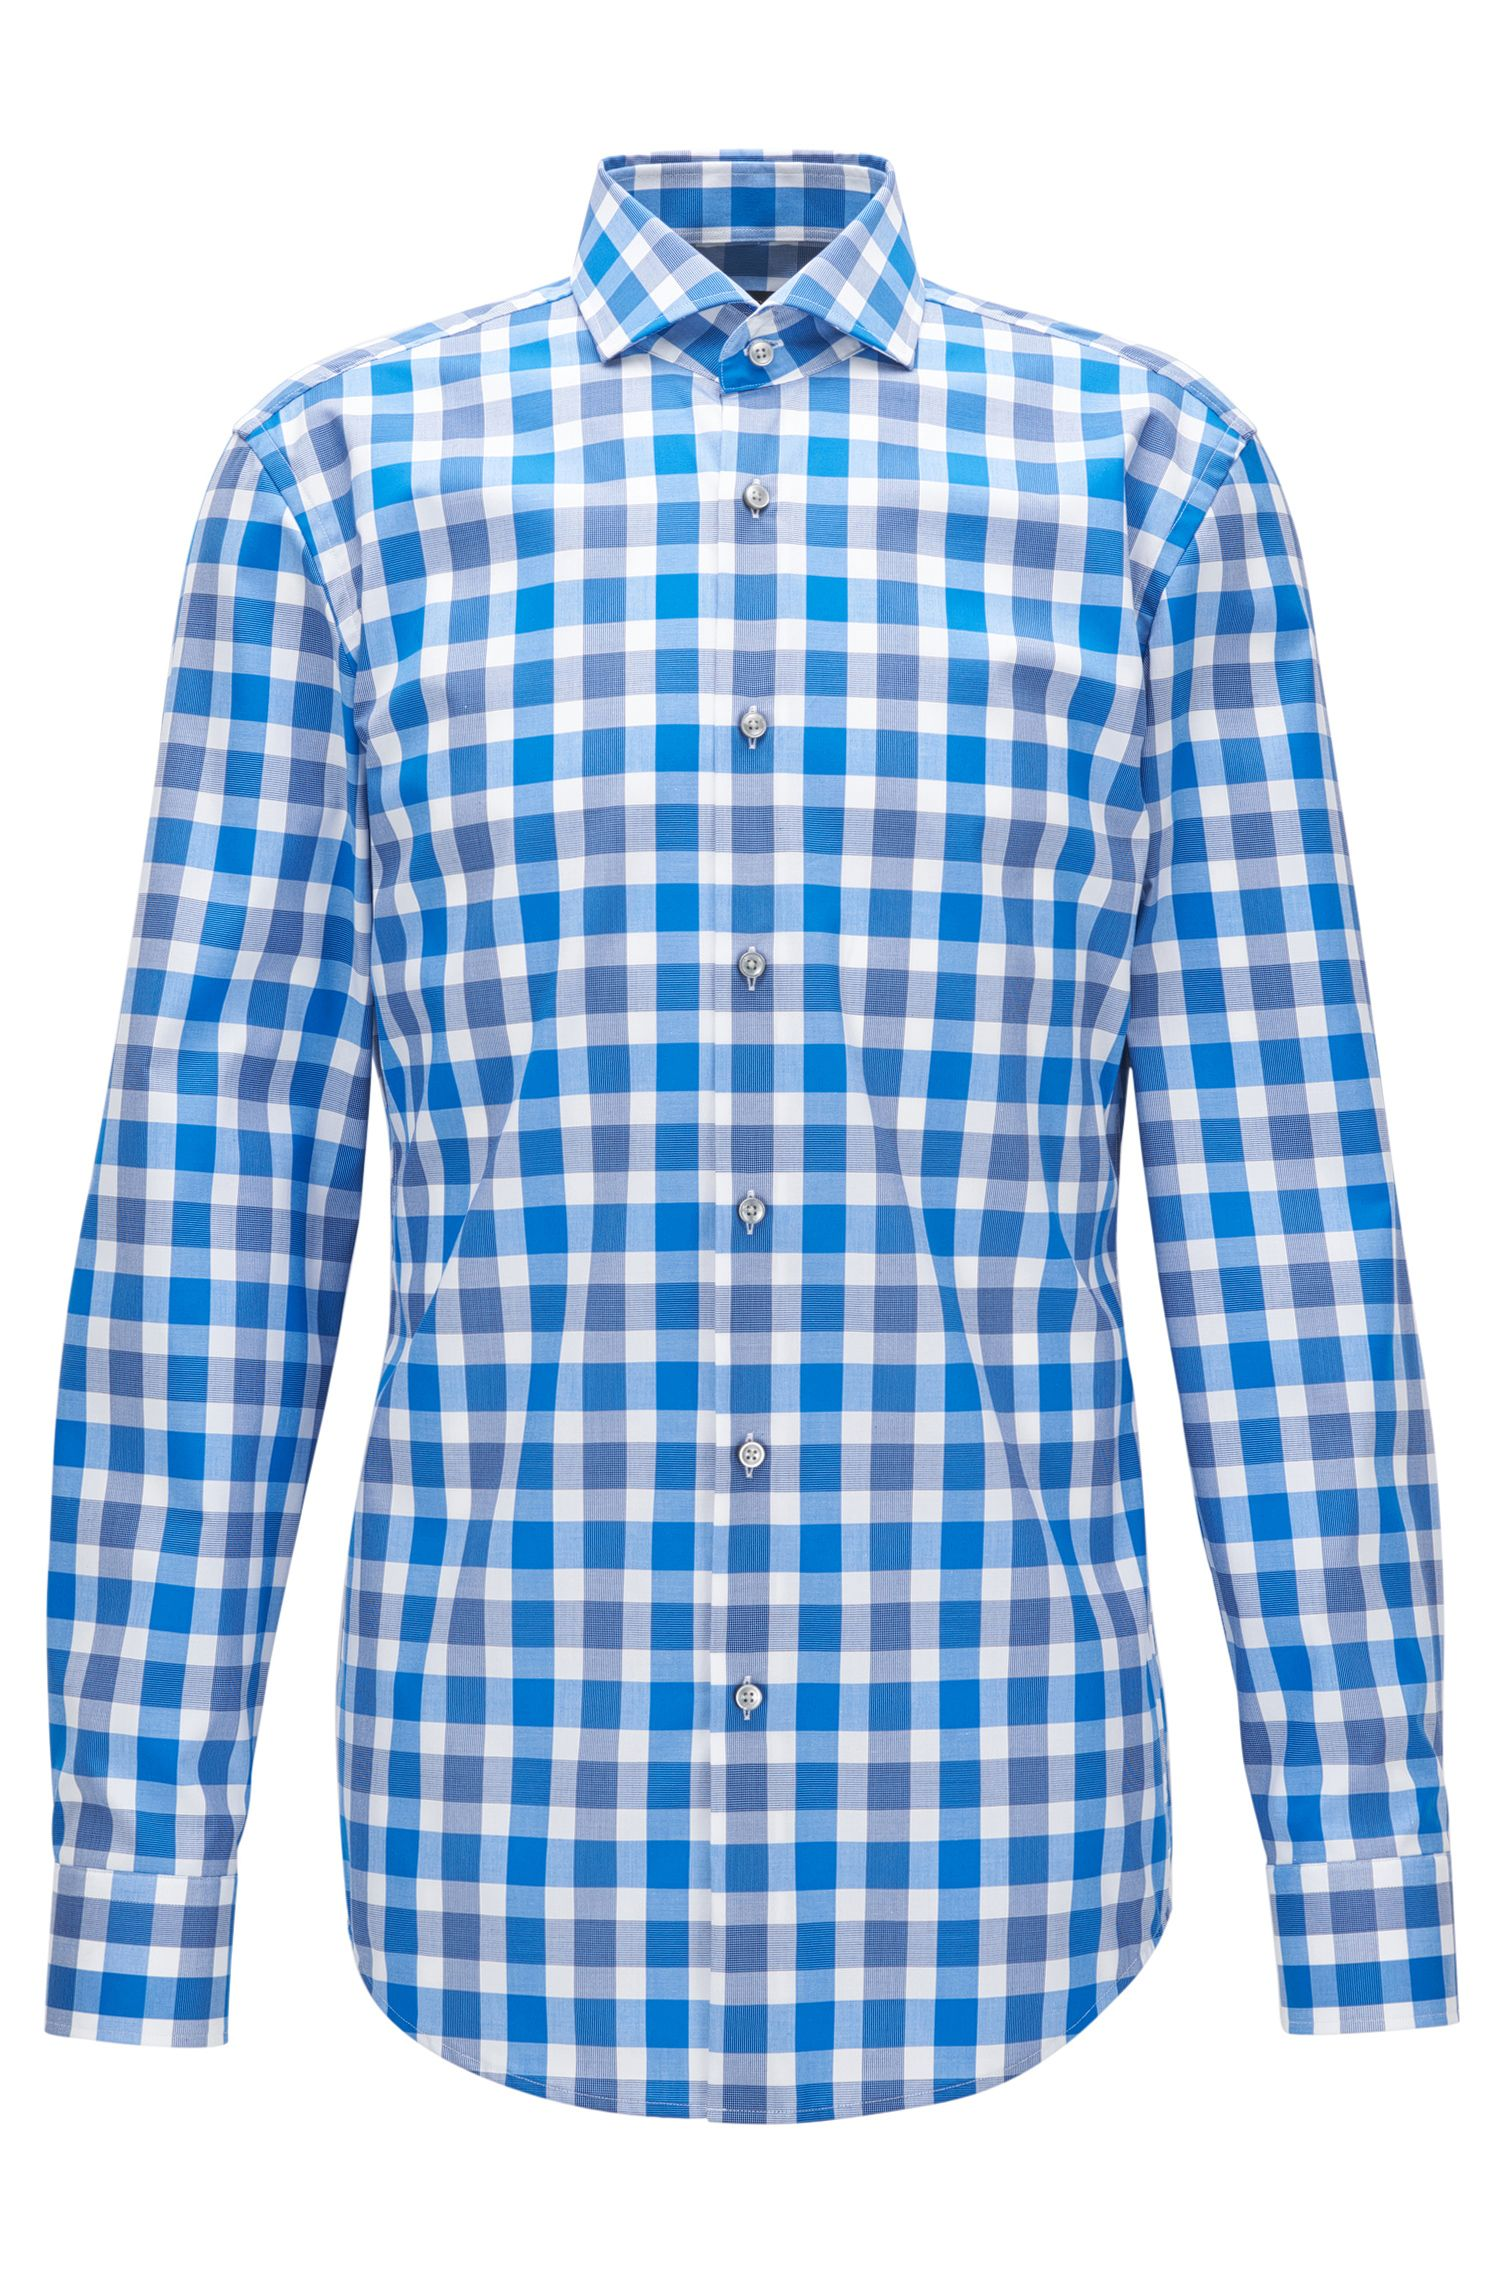 Checked Cotton Dress Shirt, Slim Fit | Jason